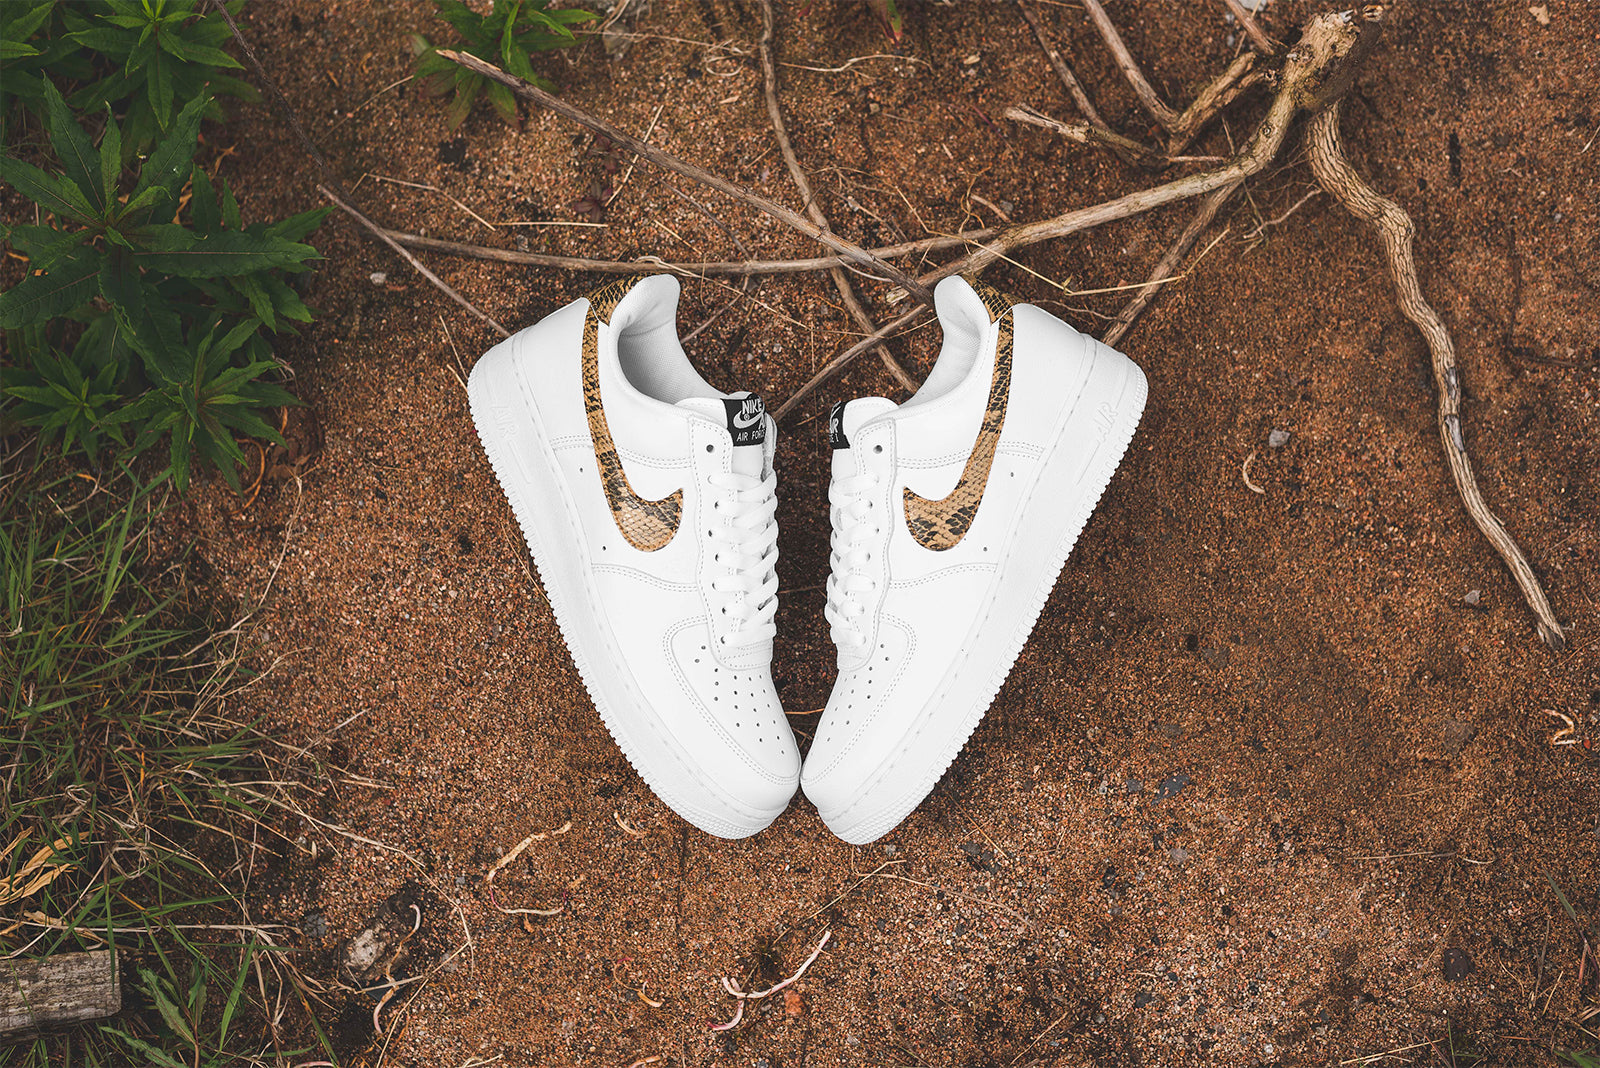 Buy The Nike Air Force 1 Low Ivory Snake (96 Snake) Right